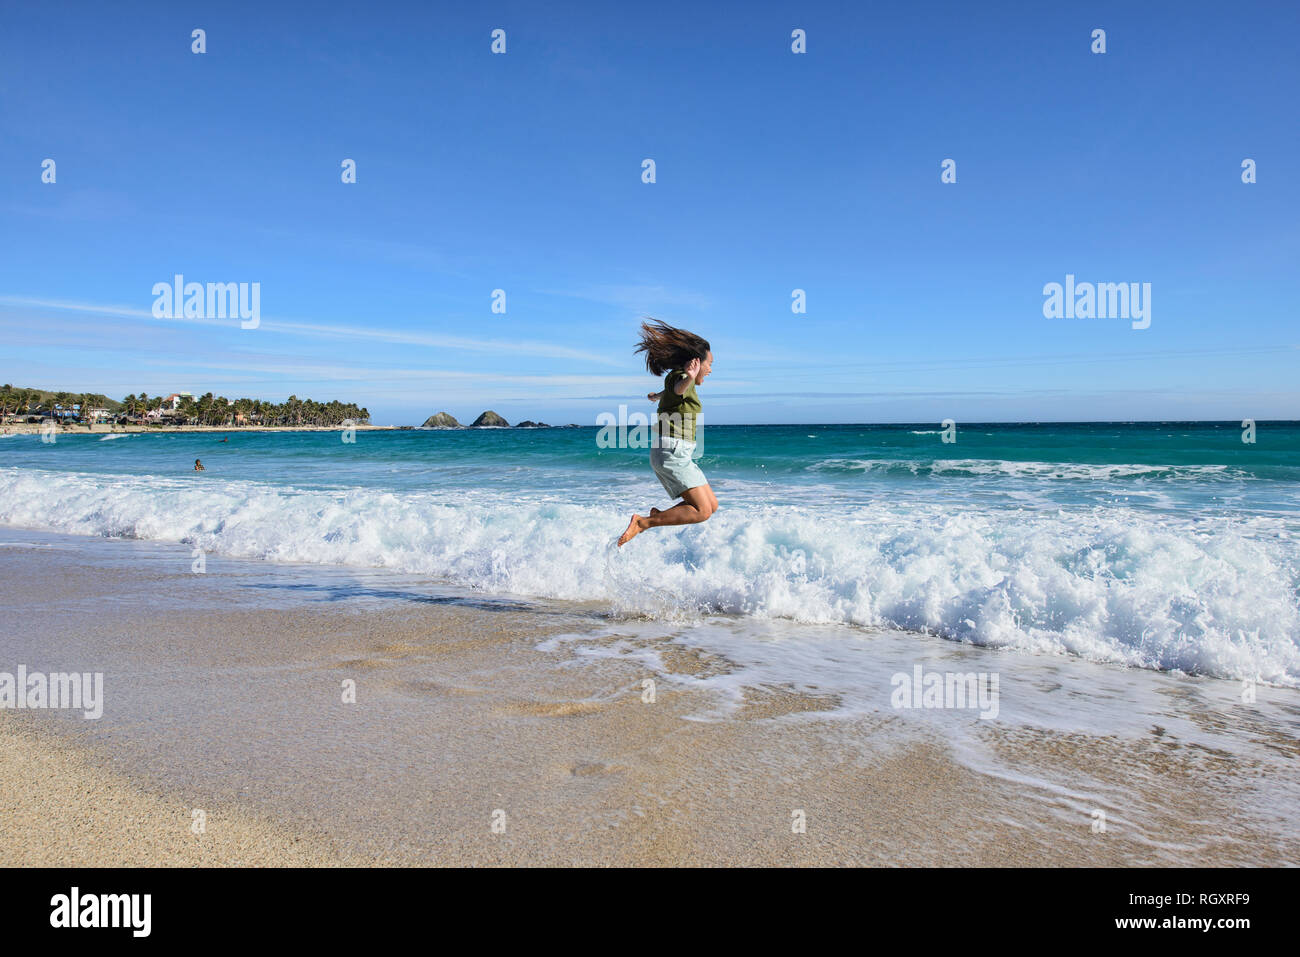 Jumpshot at the beautiful Blue Lagoon (Maira-ira) Beach, Pagudpud, Ilocos Norte, Philippines - Stock Image